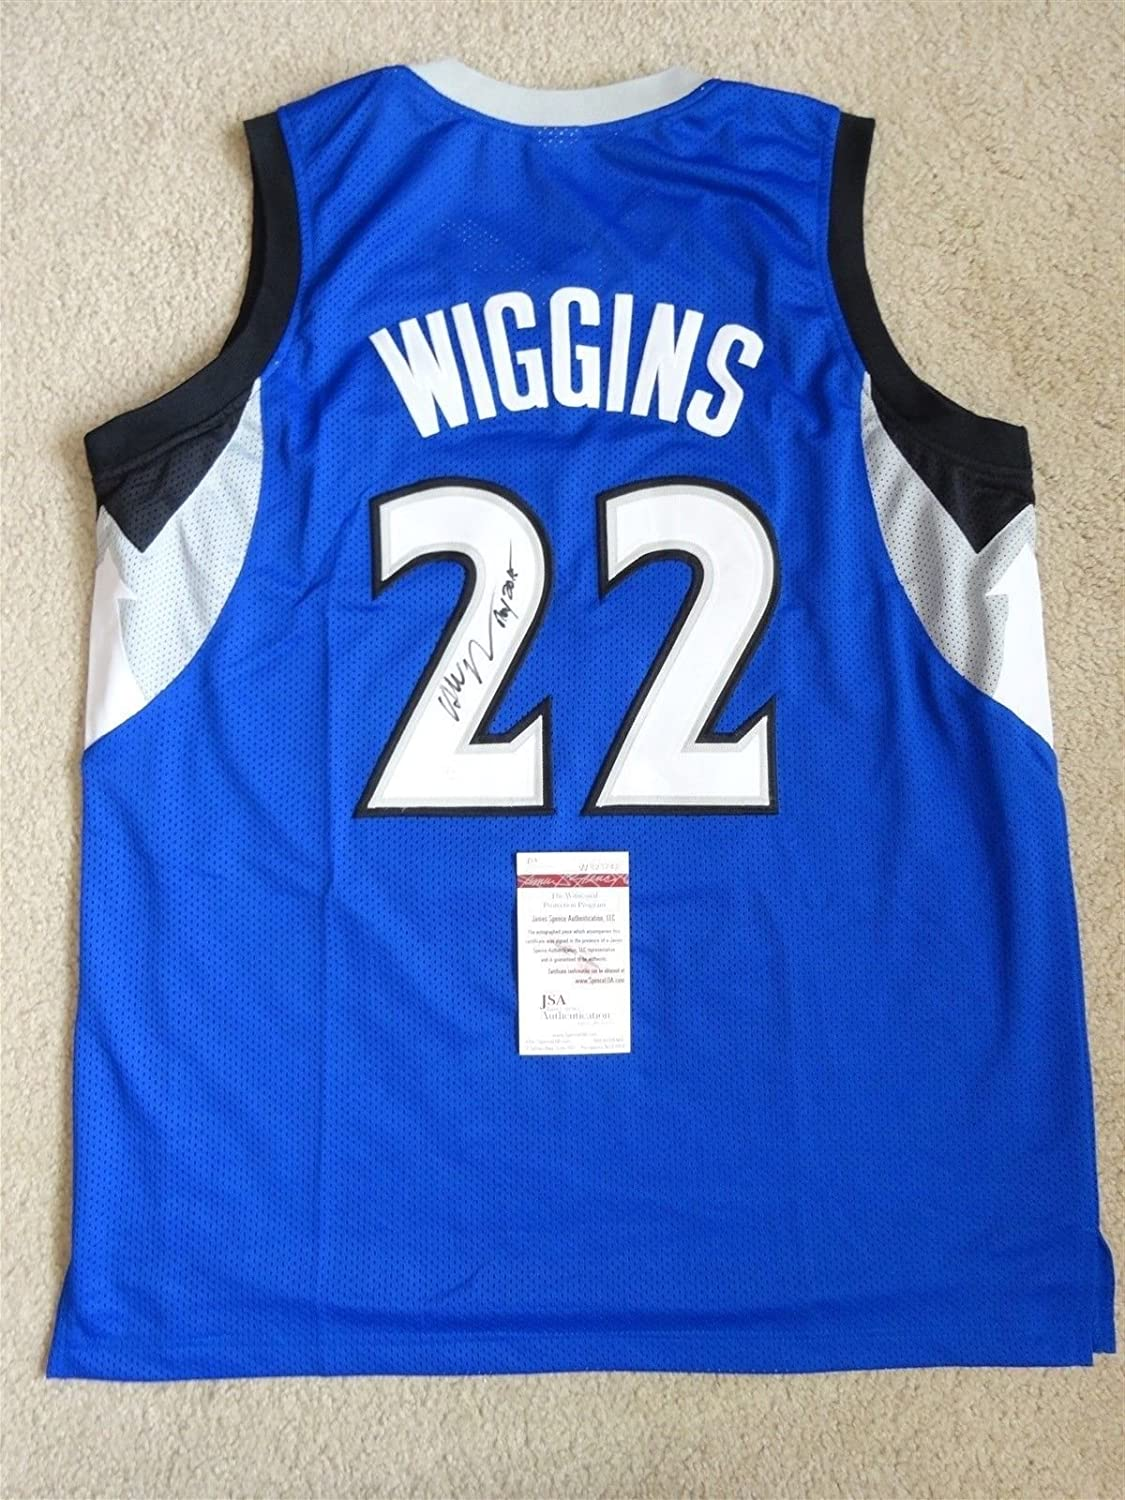 low priced 62072 f13d4 ANDREW WIGGINS SIGNED AUTO MINNESOTA TIMBERWOLVES BLUE ...